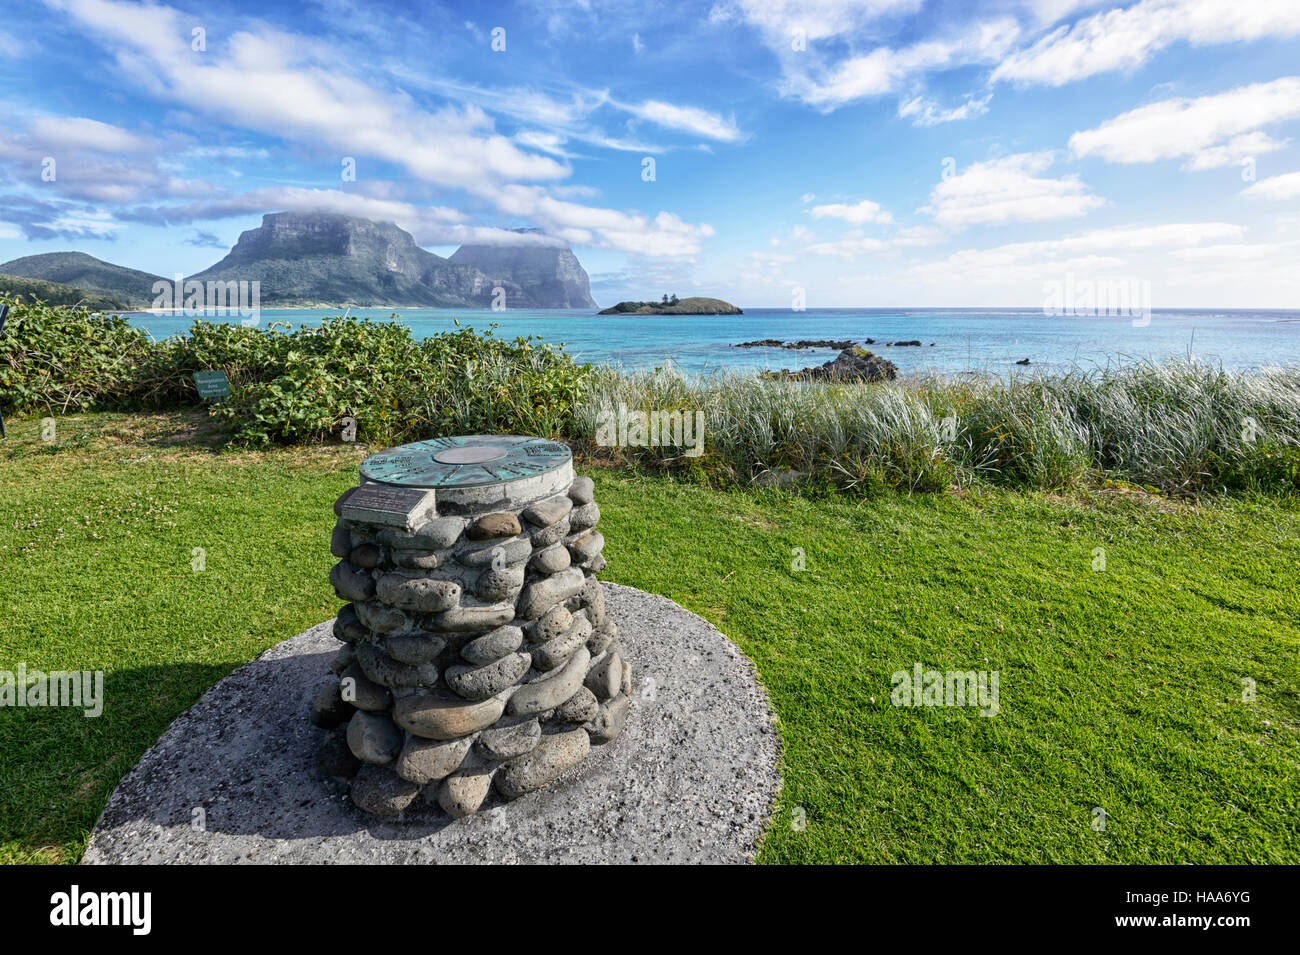 Sundial overlooking The Lagoon, with Mt Gower and Mt Lidgbird in the distance, Lord Howe Island, New South Wales, - Stock Image